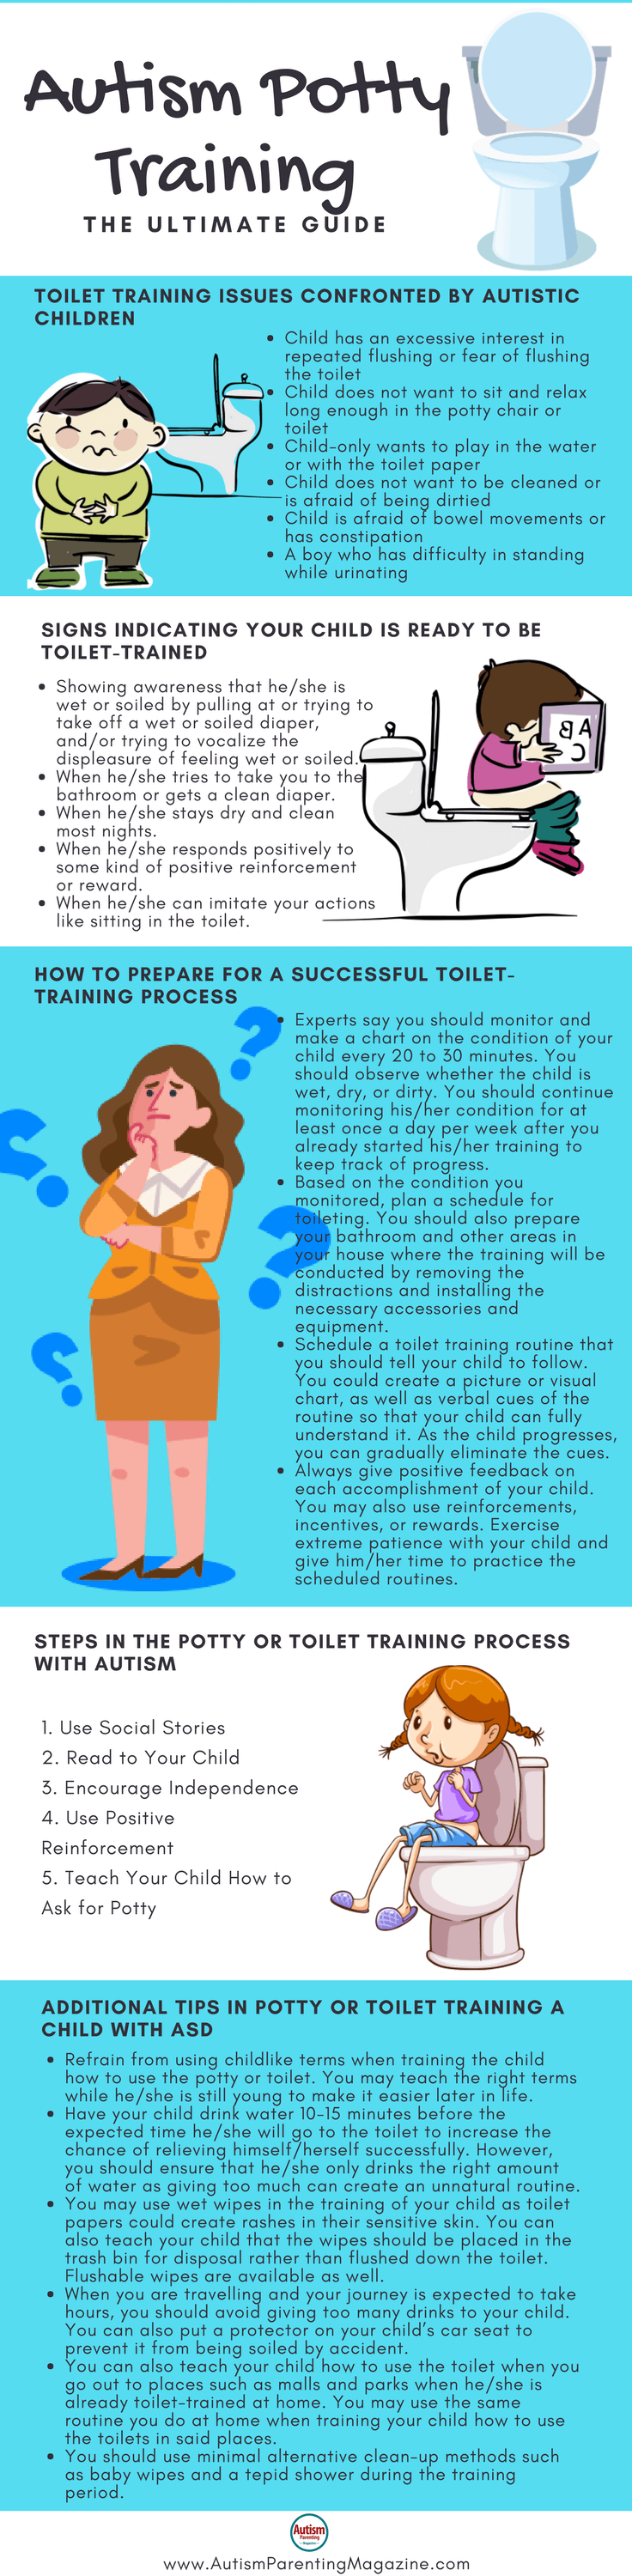 Autism Potty Training – The Ultimate Guide